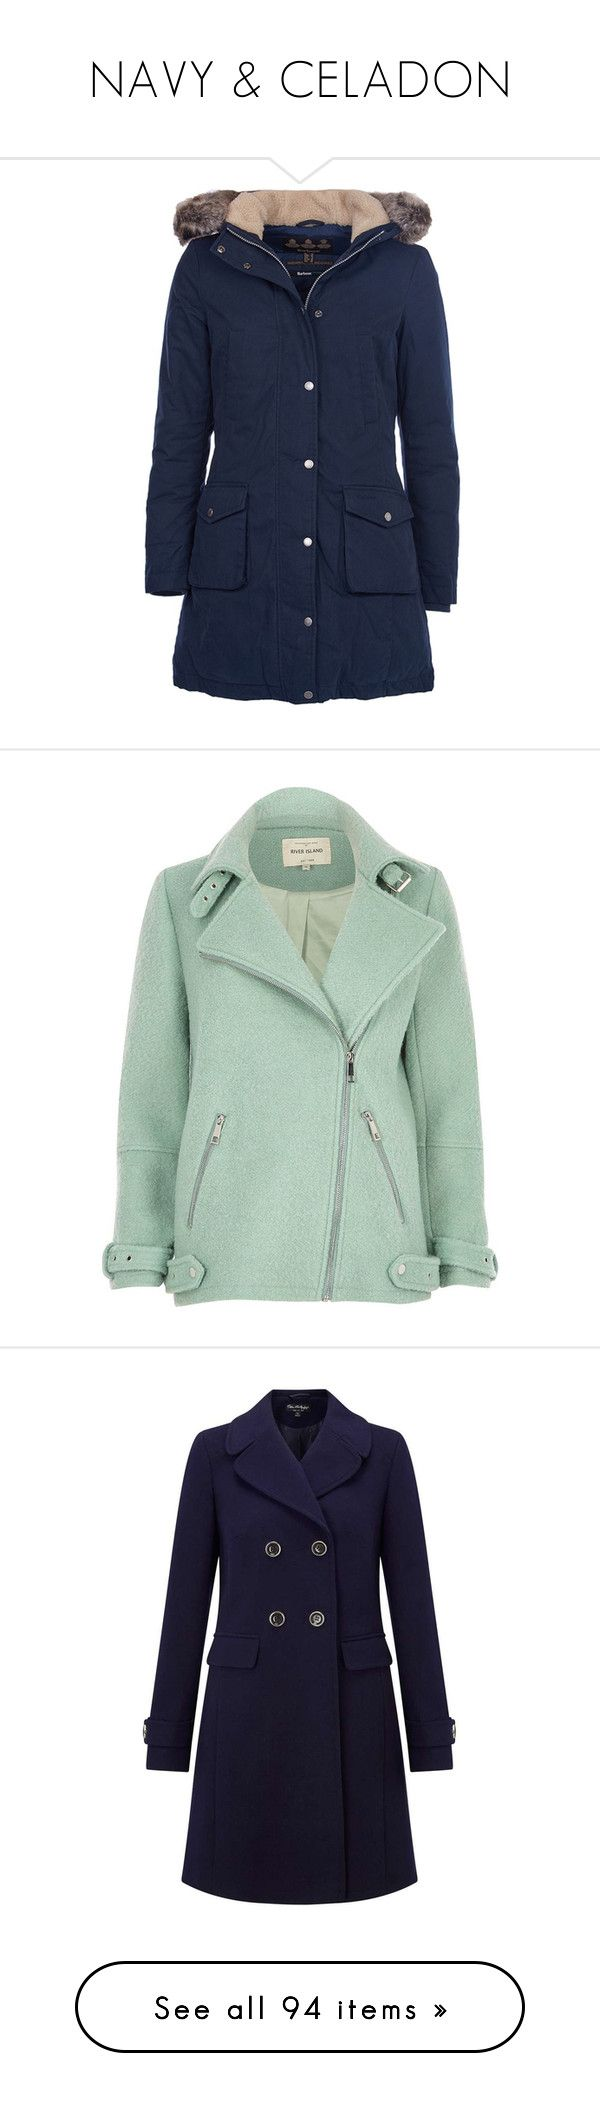 """""""NAVY & CELADON"""" by gustosa ❤ liked on Polyvore featuring outerwear, coats, navy blue coat, navy parka, barbour coats, dkny hooded faux-fur-trim parka coat, blue coat, coats & jackets, jackets and long oversized coat"""